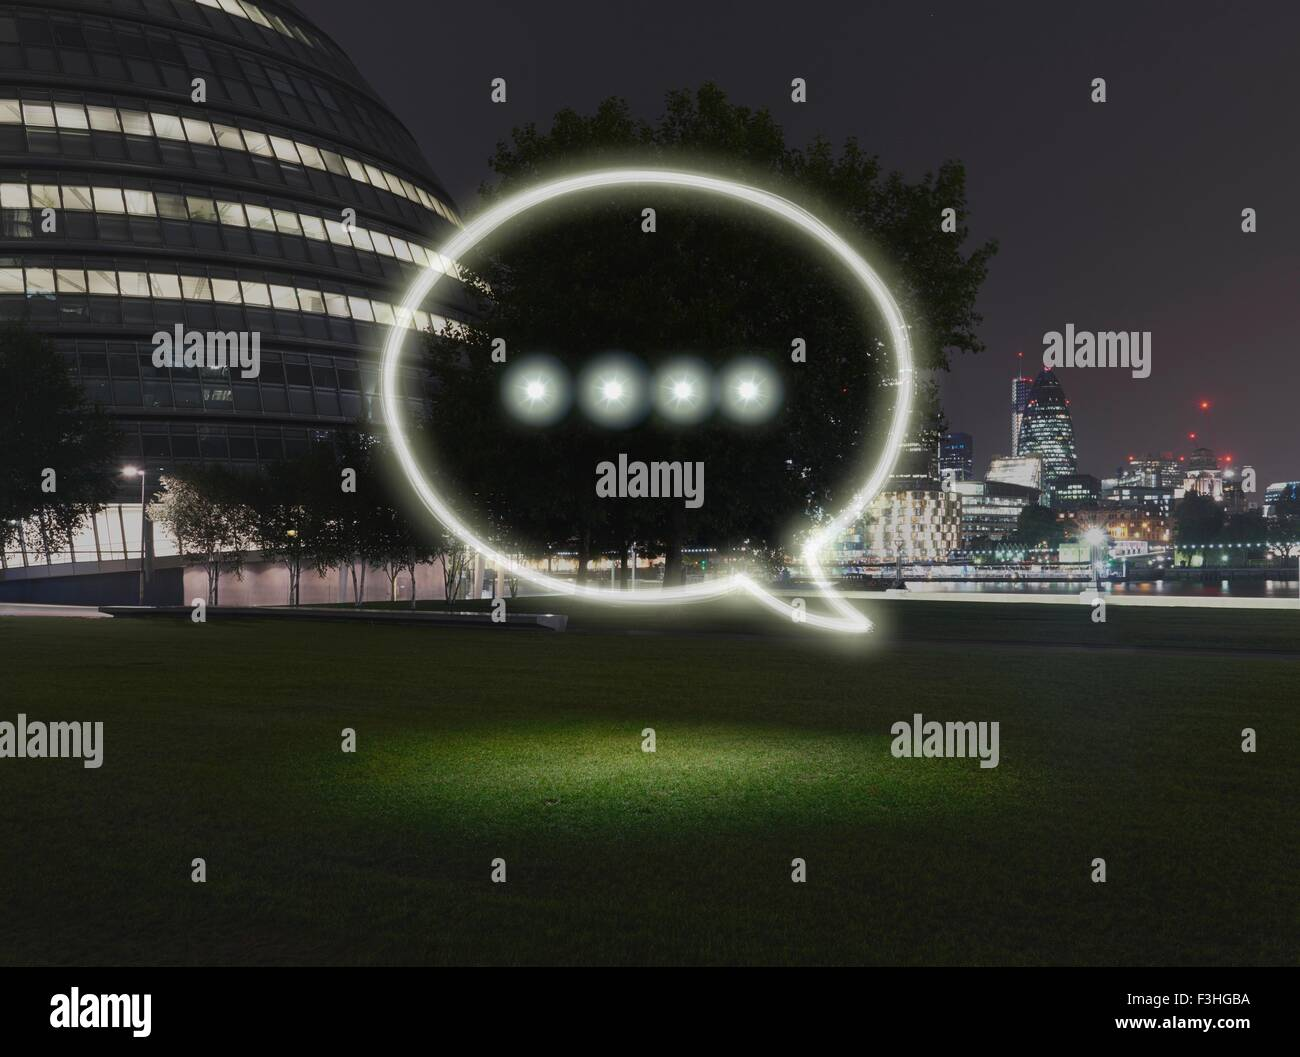 Glowing speech bubble symbol in city at night - Stock Image